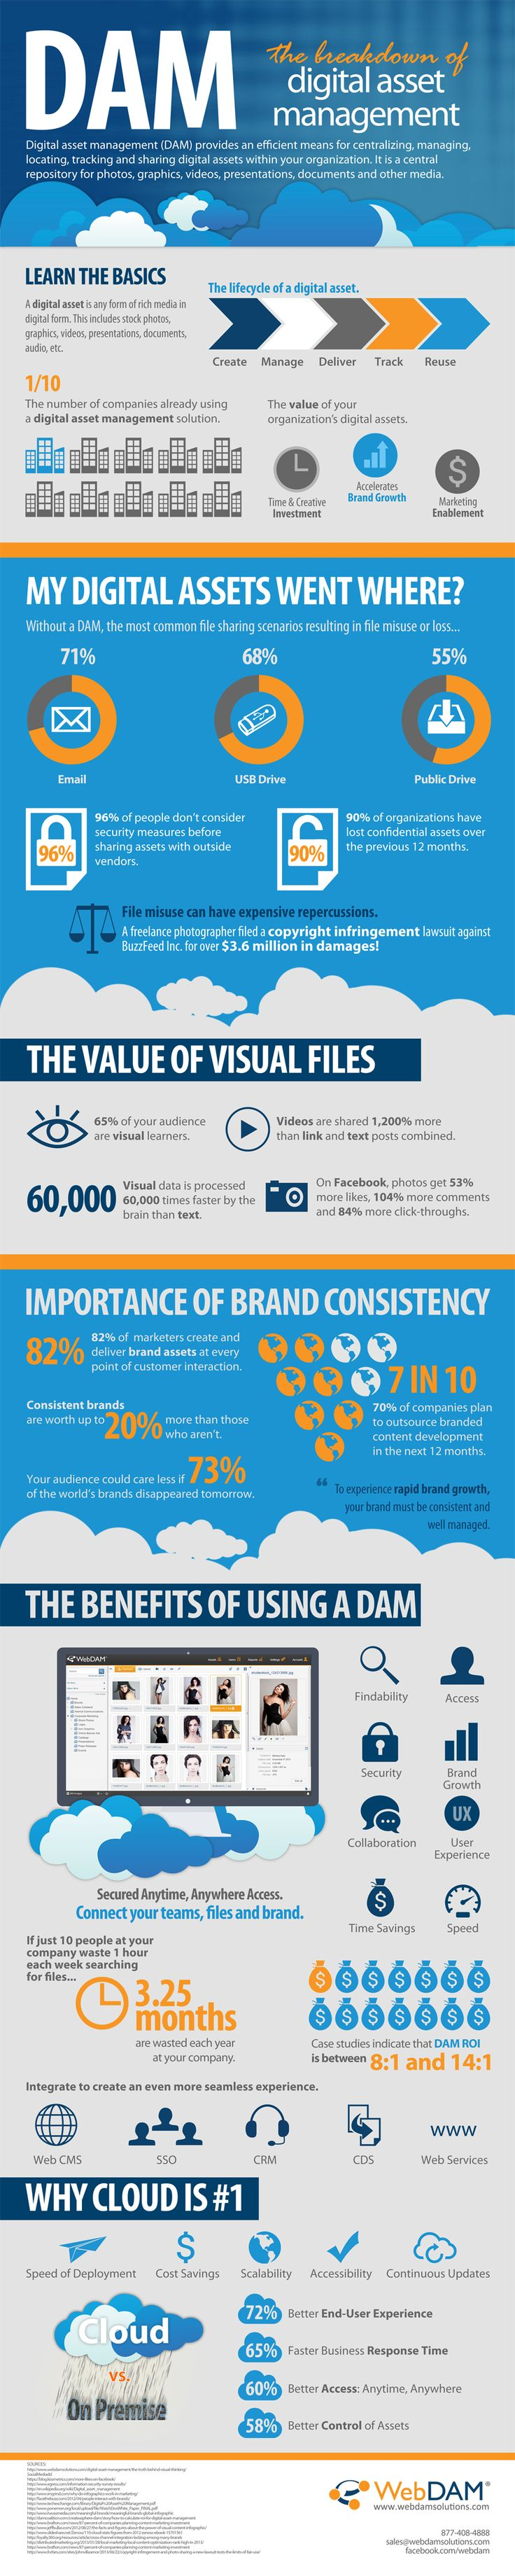 See how DAM connects your brands, files, and teams in this digital asset management infographic. Get an overview of the latest trends, stats, and benefits.